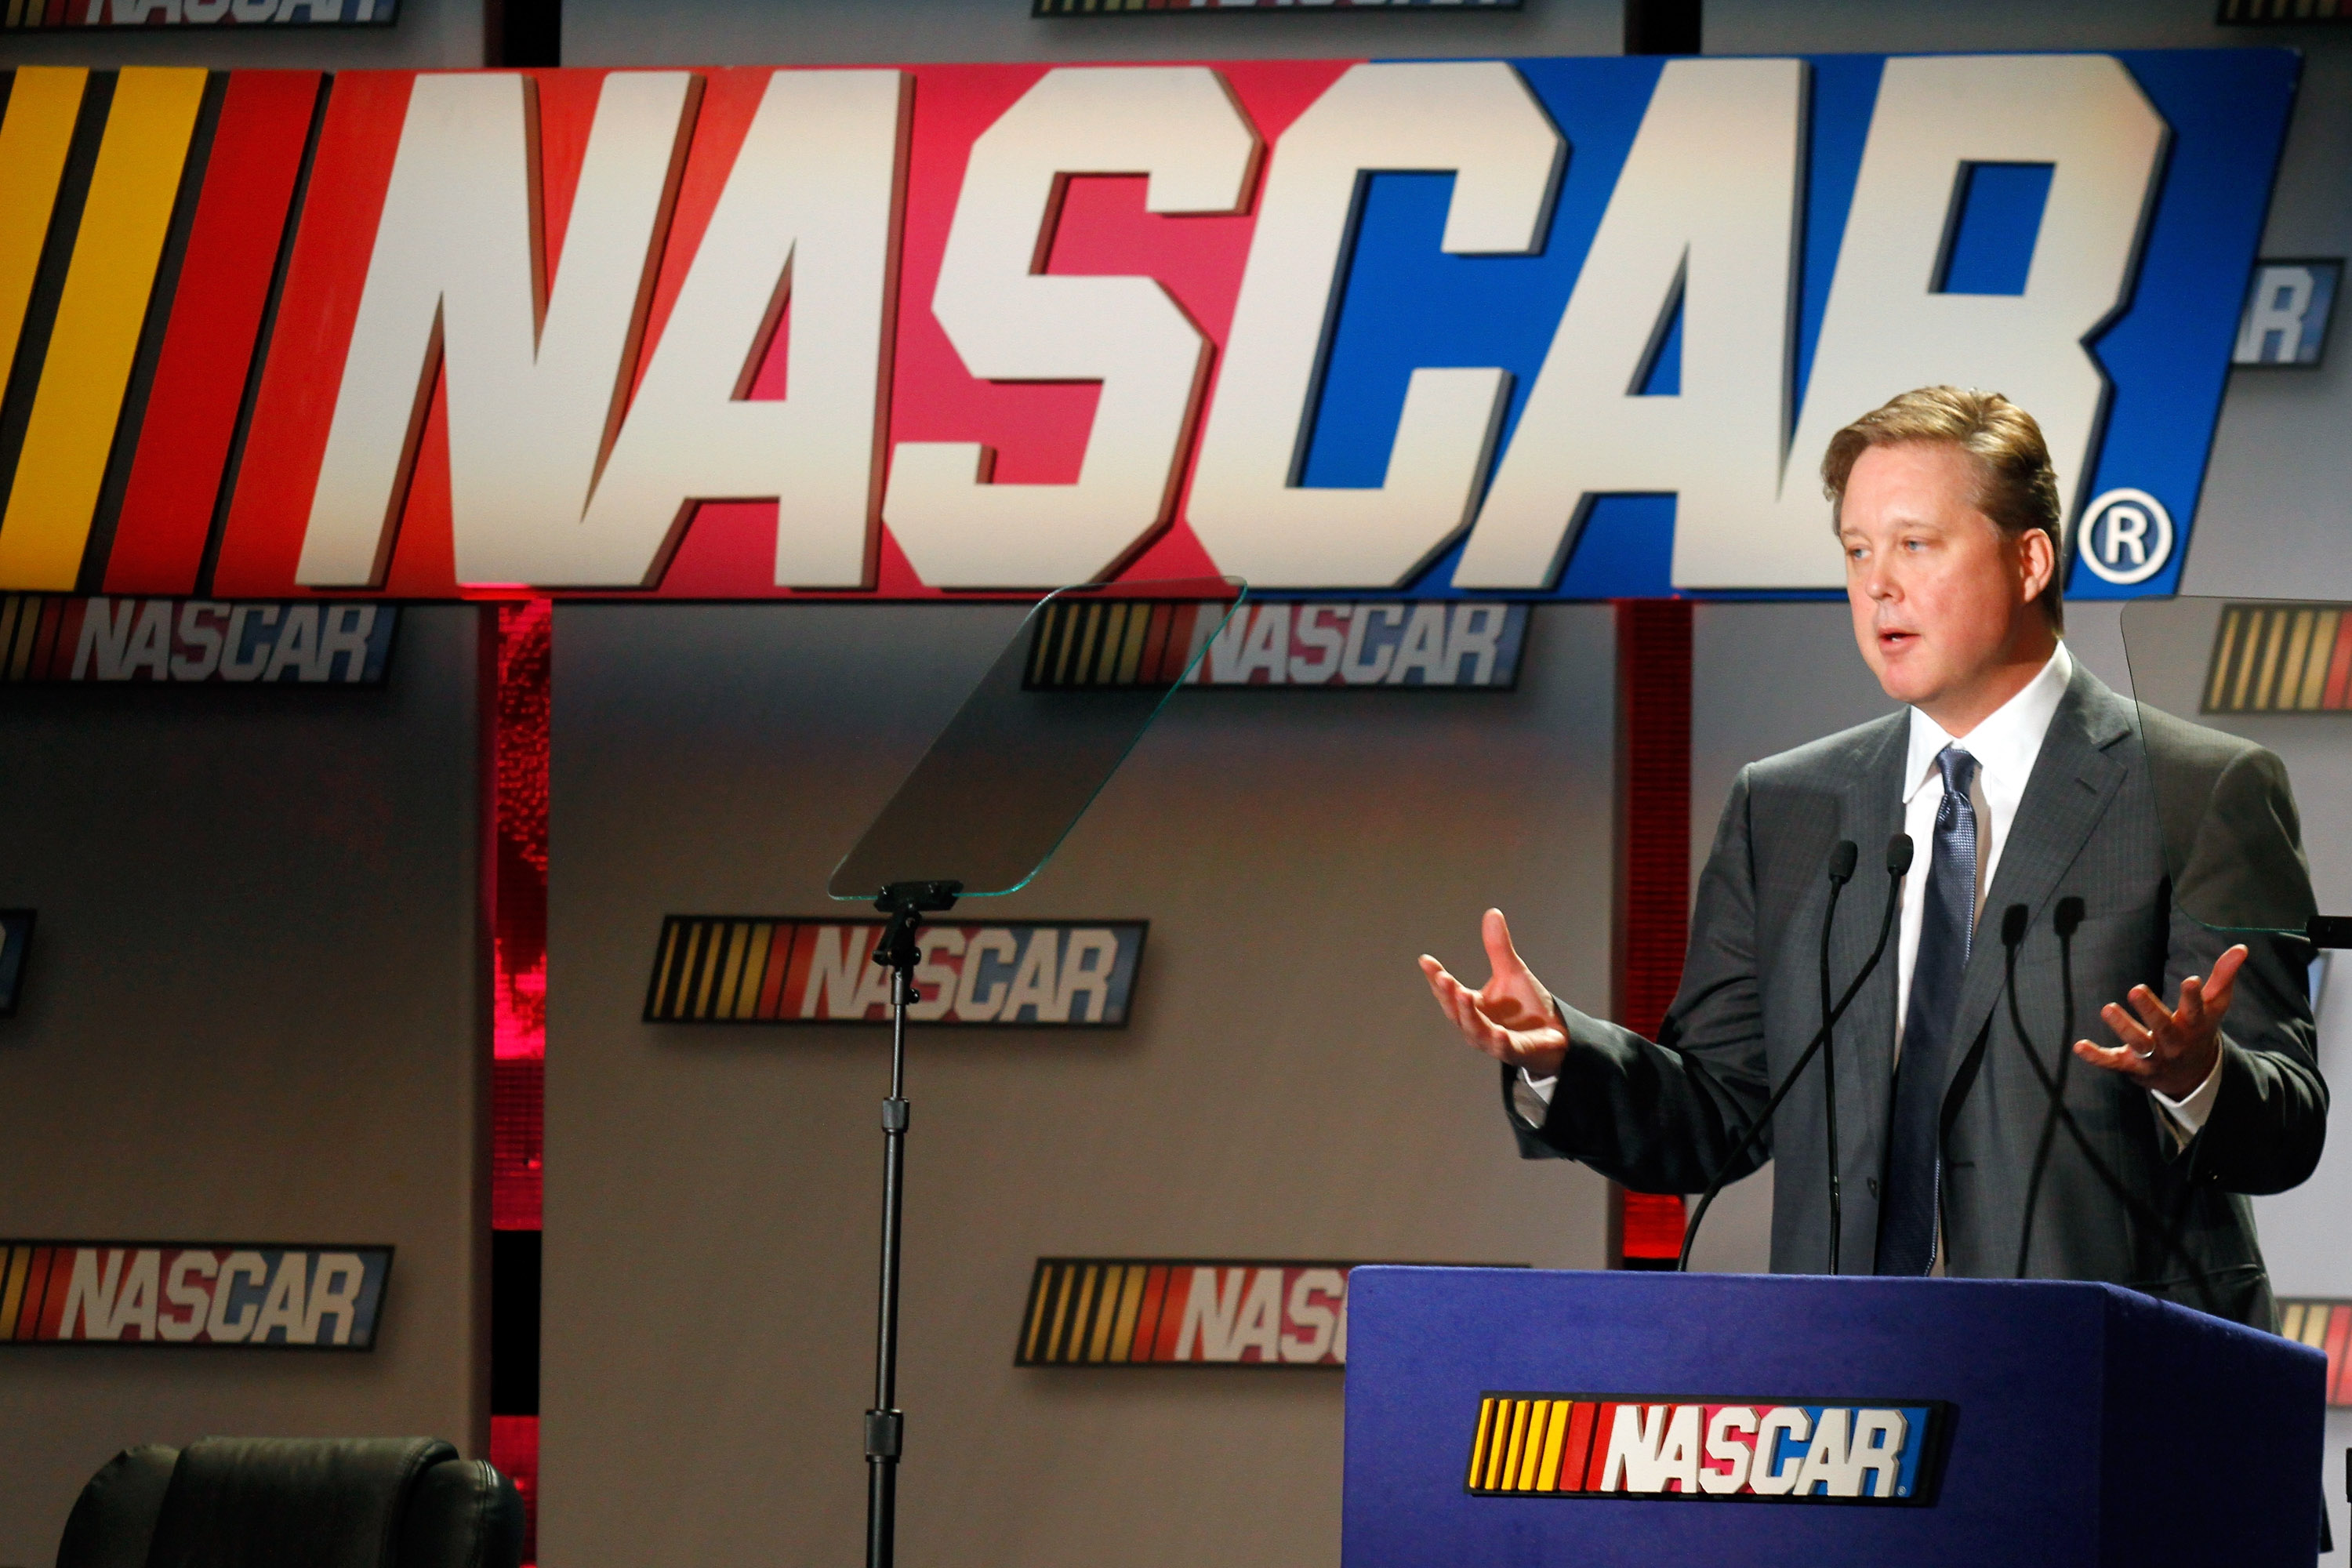 If Brian France could make some difficult changes in the short-term, NASCAR would be vastly improved in the long run.